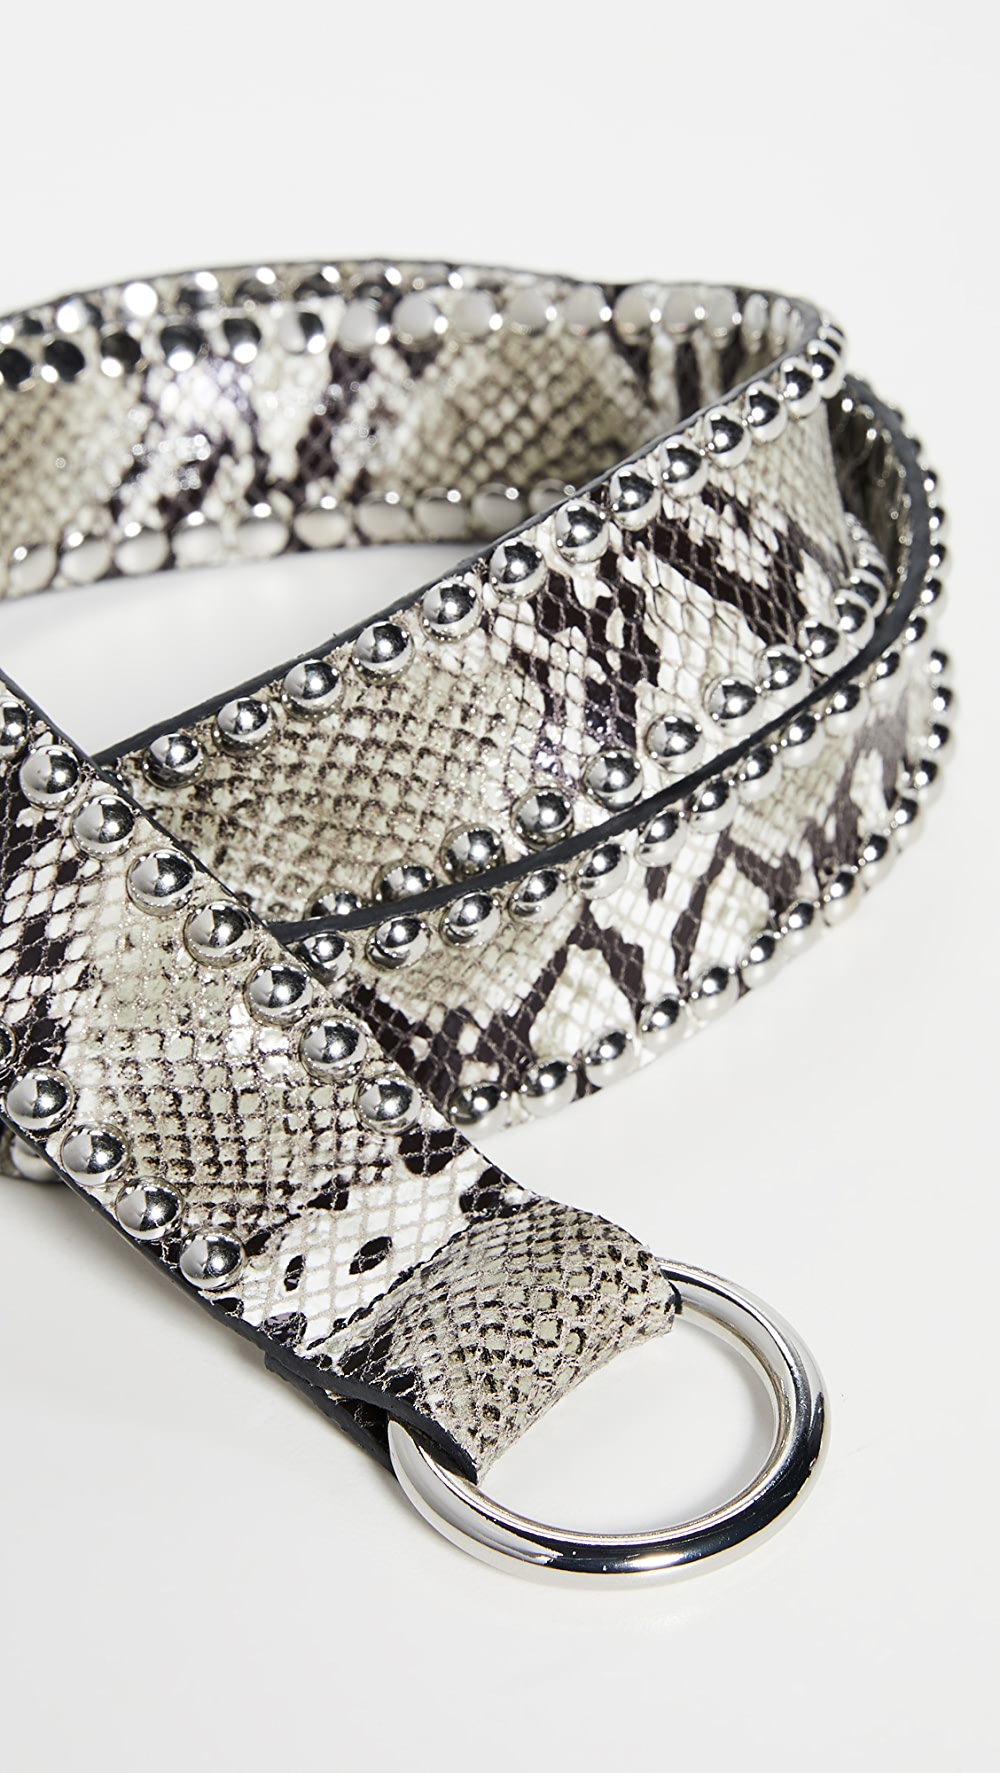 2019 Fashion B-low The Belt - Mia Moto Python Belt To Prevent And Cure Diseases